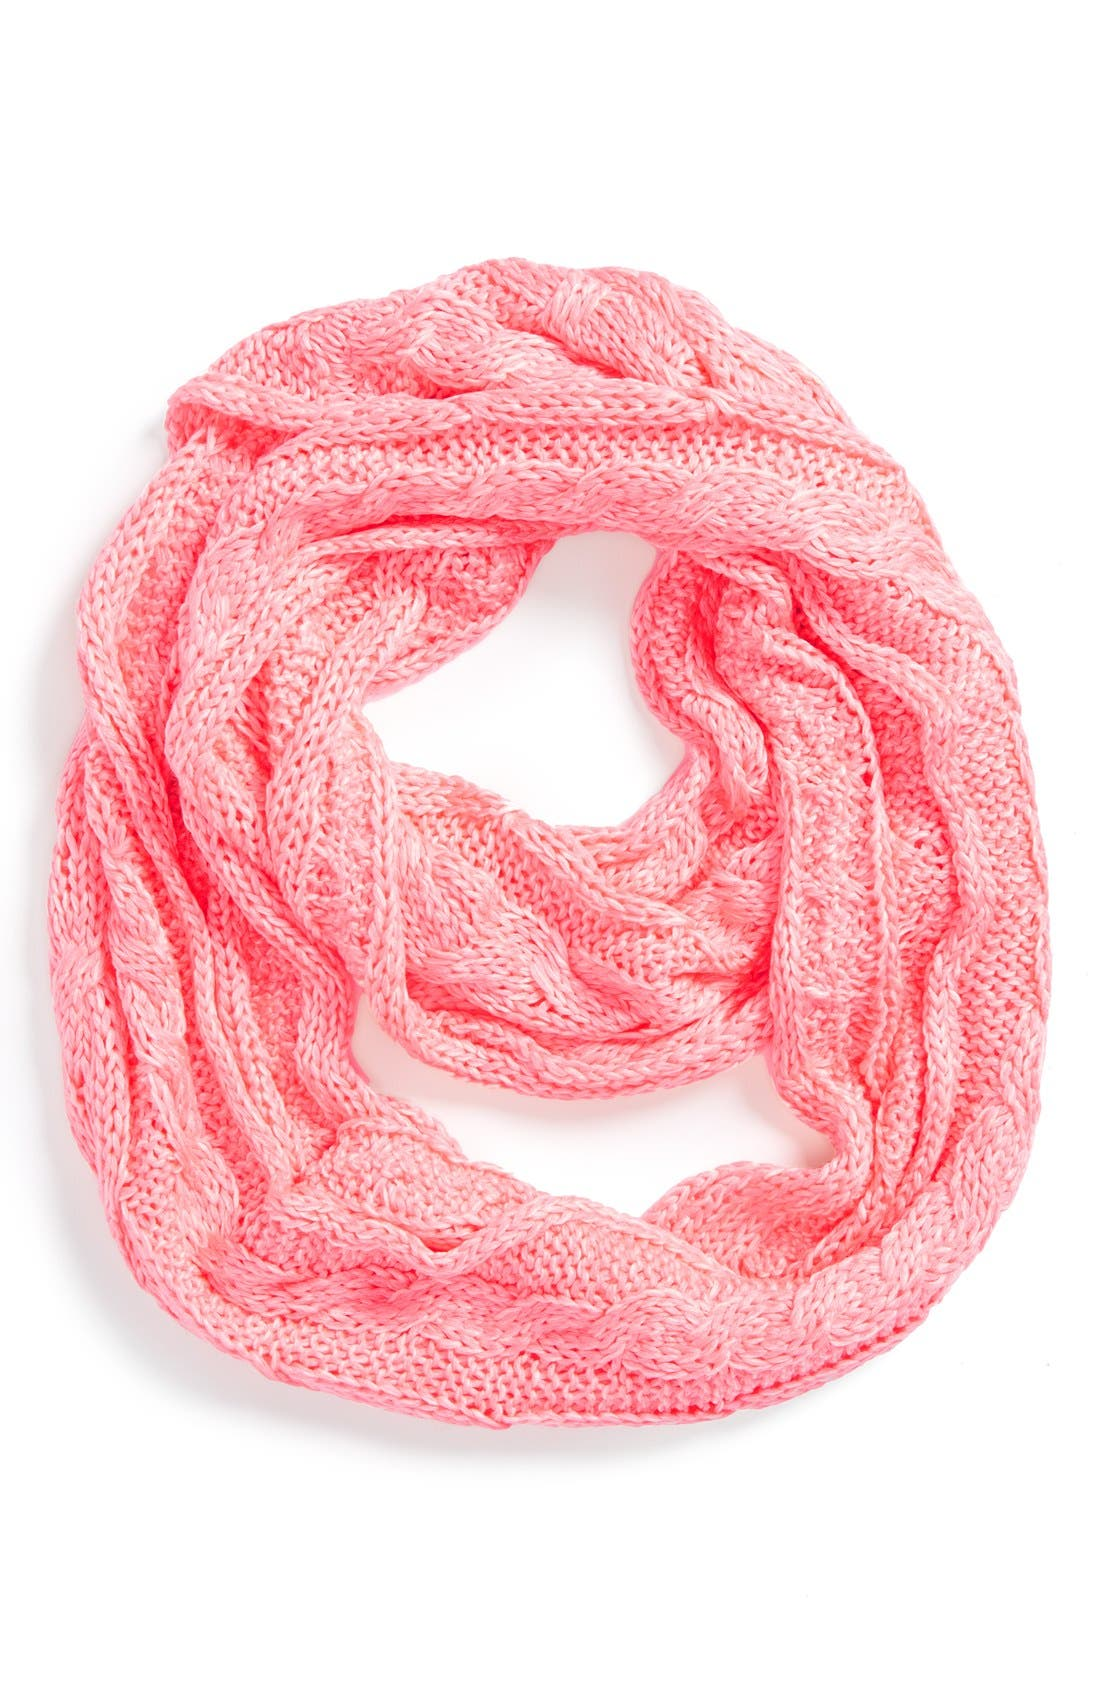 Alternate Image 1 Selected - Tucker + Tate Neon Cable Knit Scarf (Big Girls)